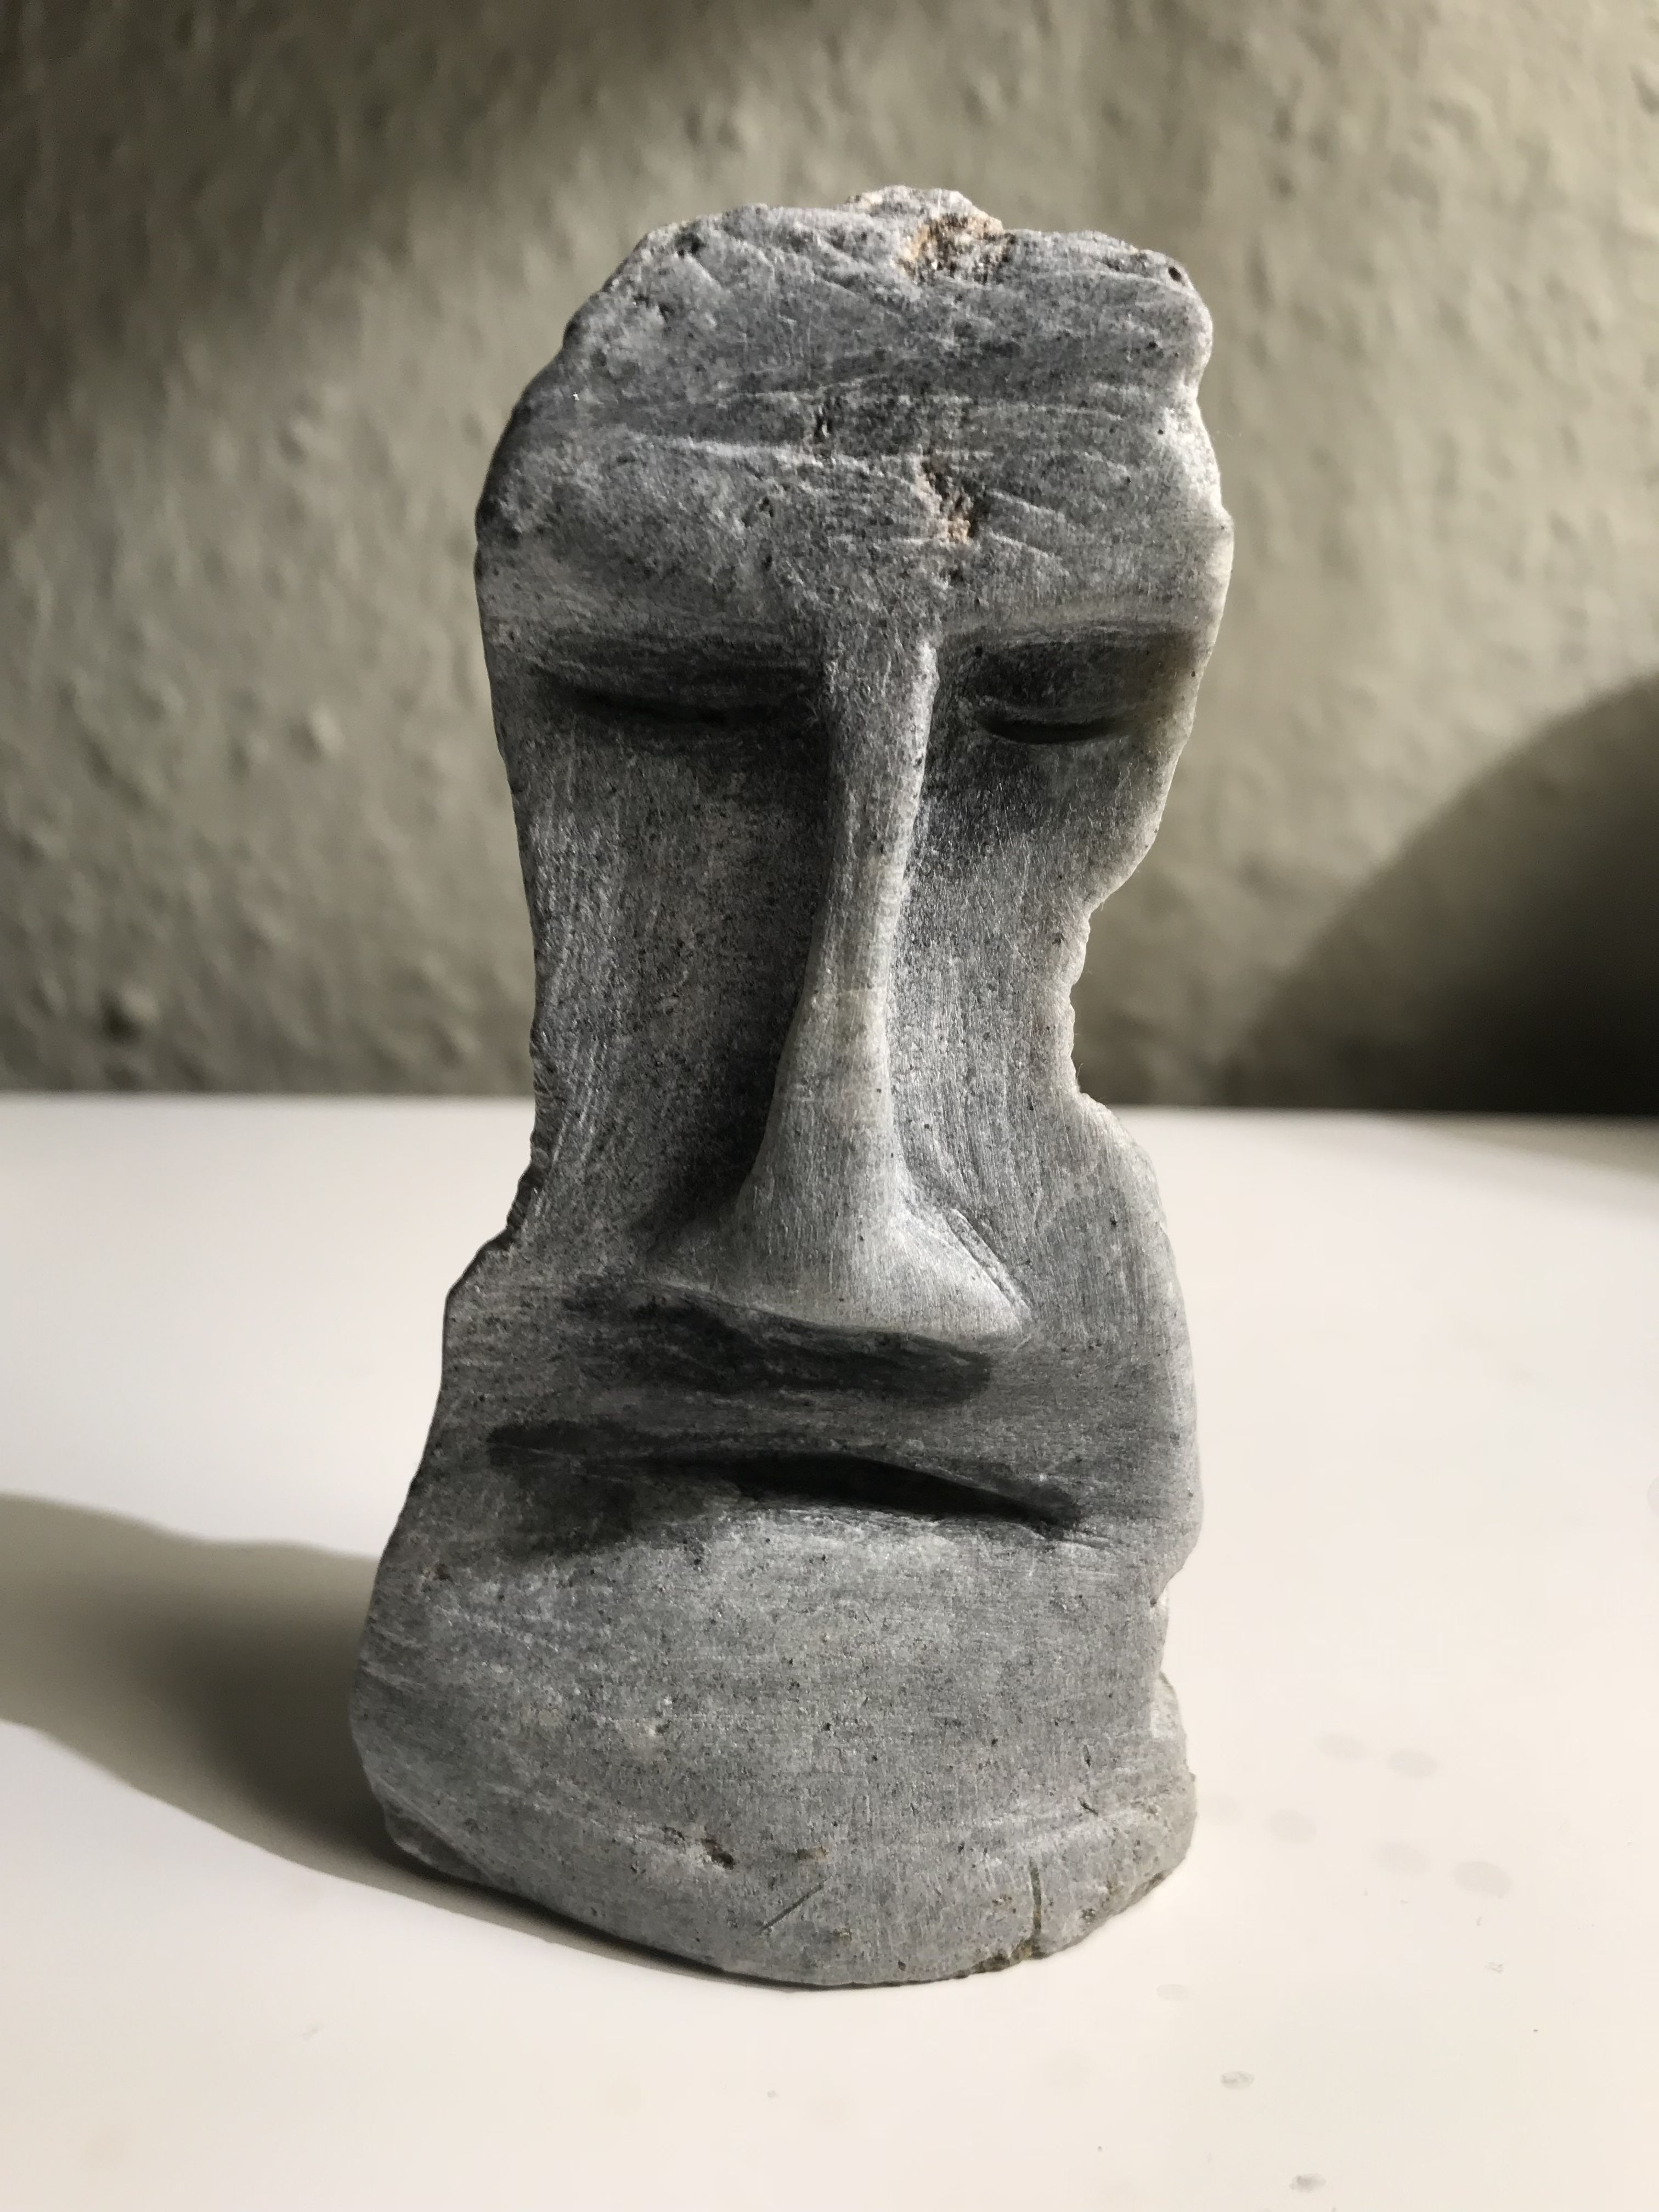 Pin by ruthi rabin on stones pinterest stone